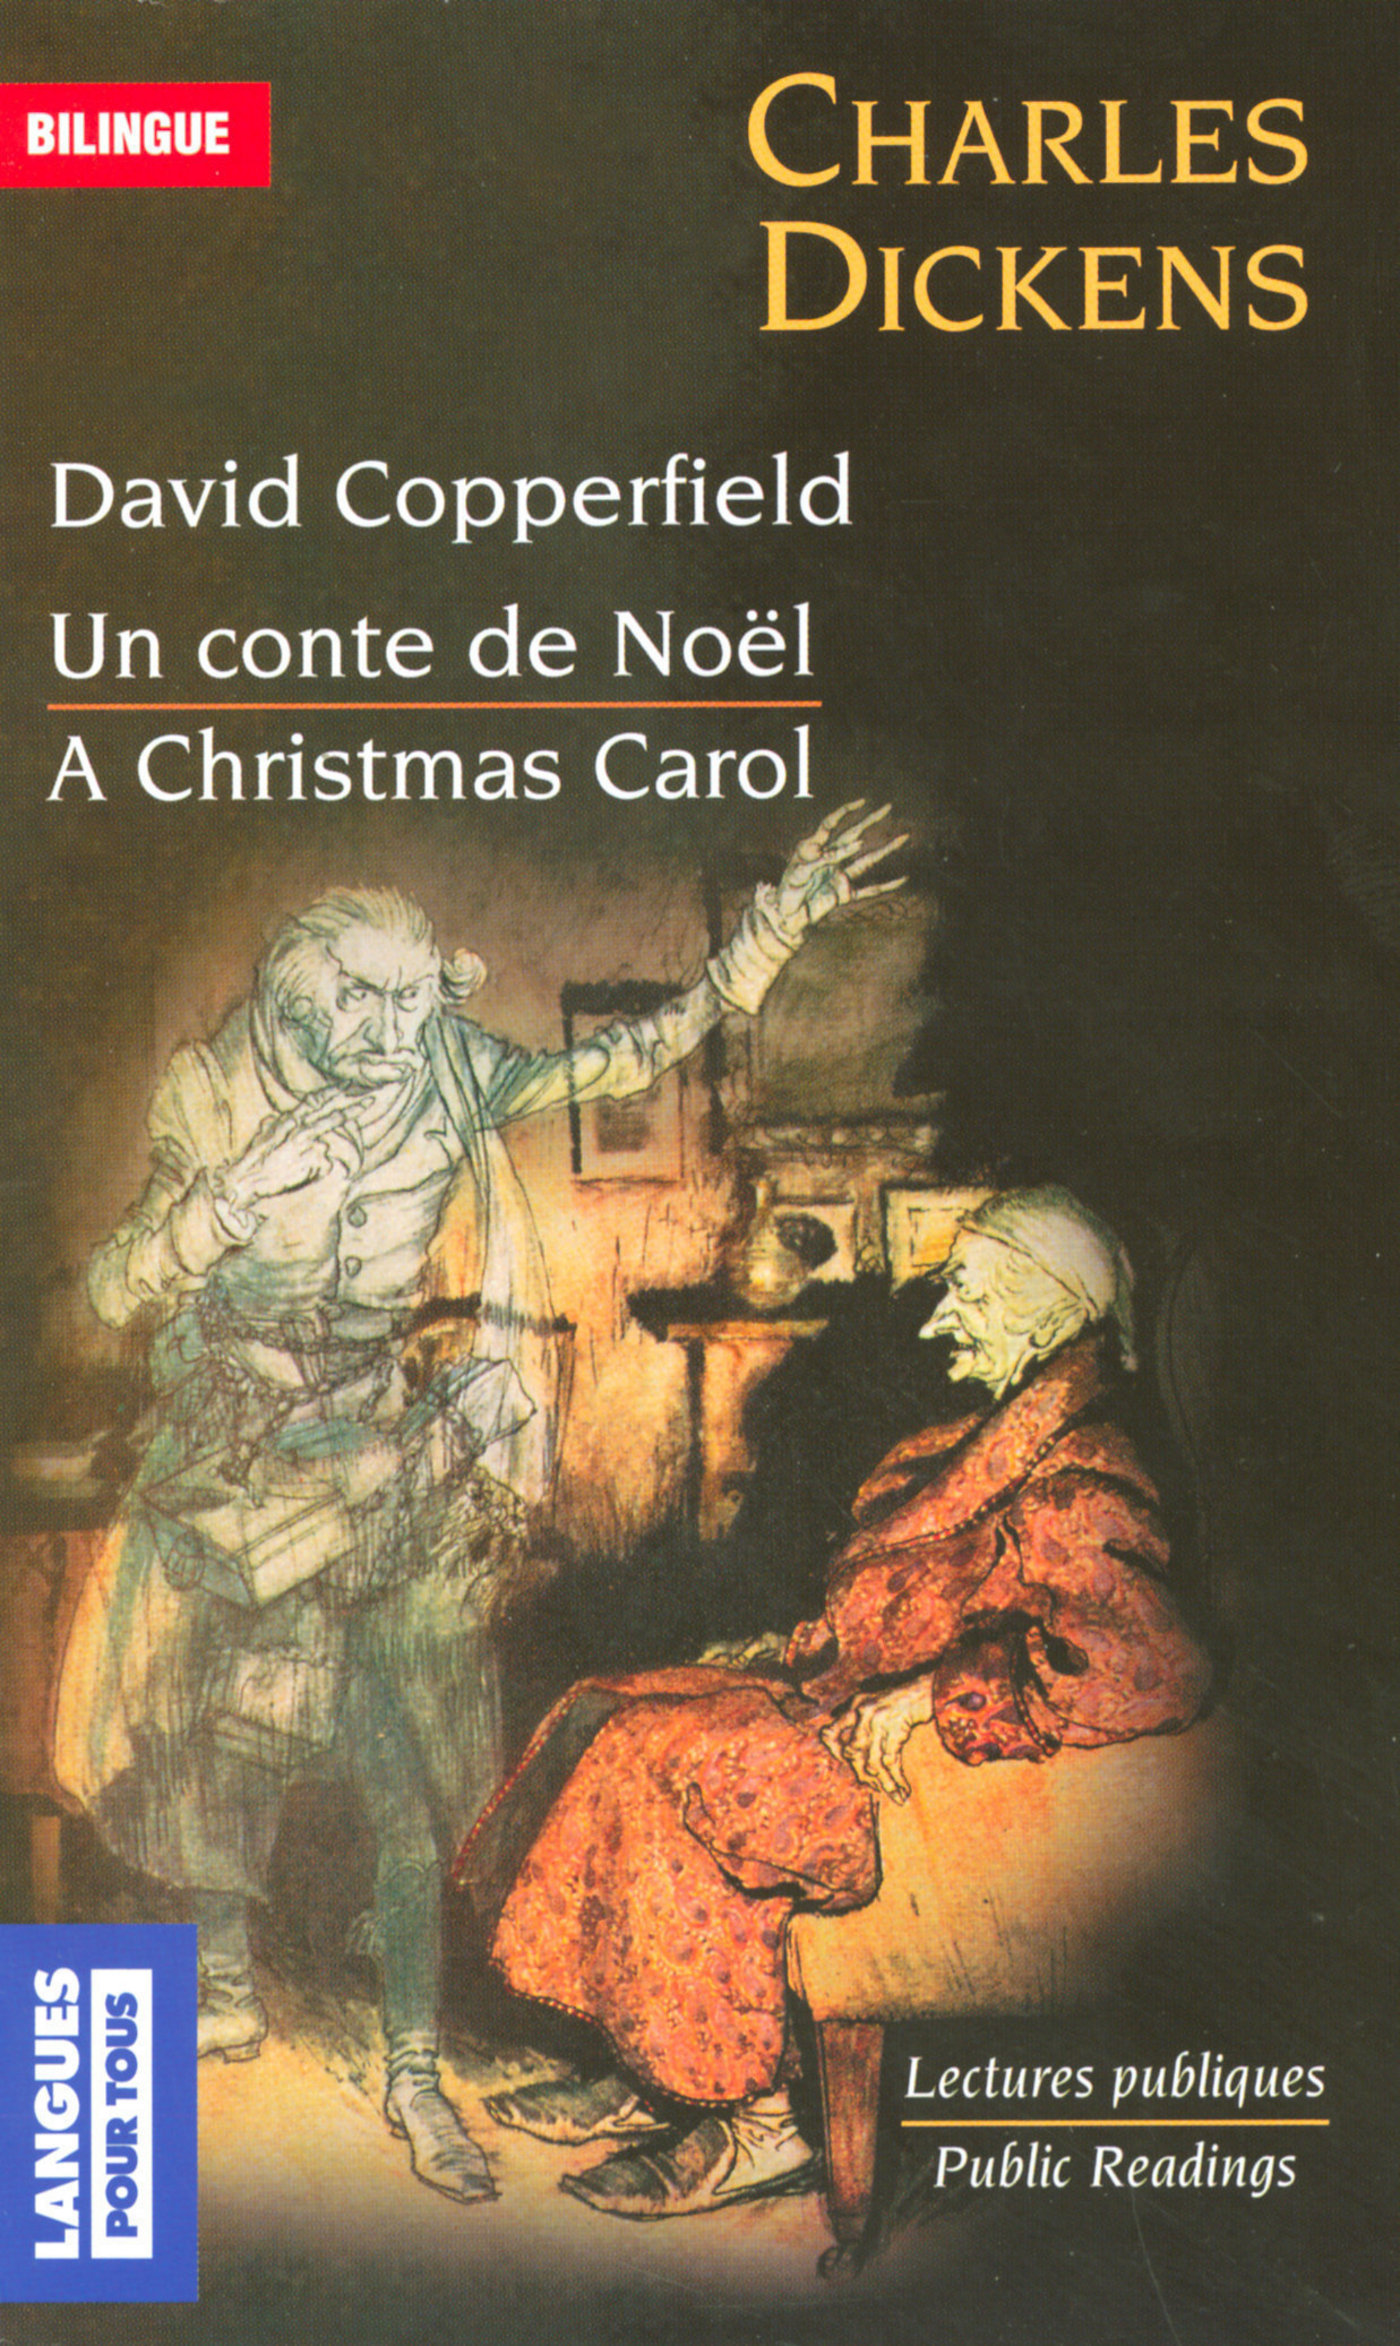 David Copperfield - A Christmas Carol, UN CONTE DE NOEL